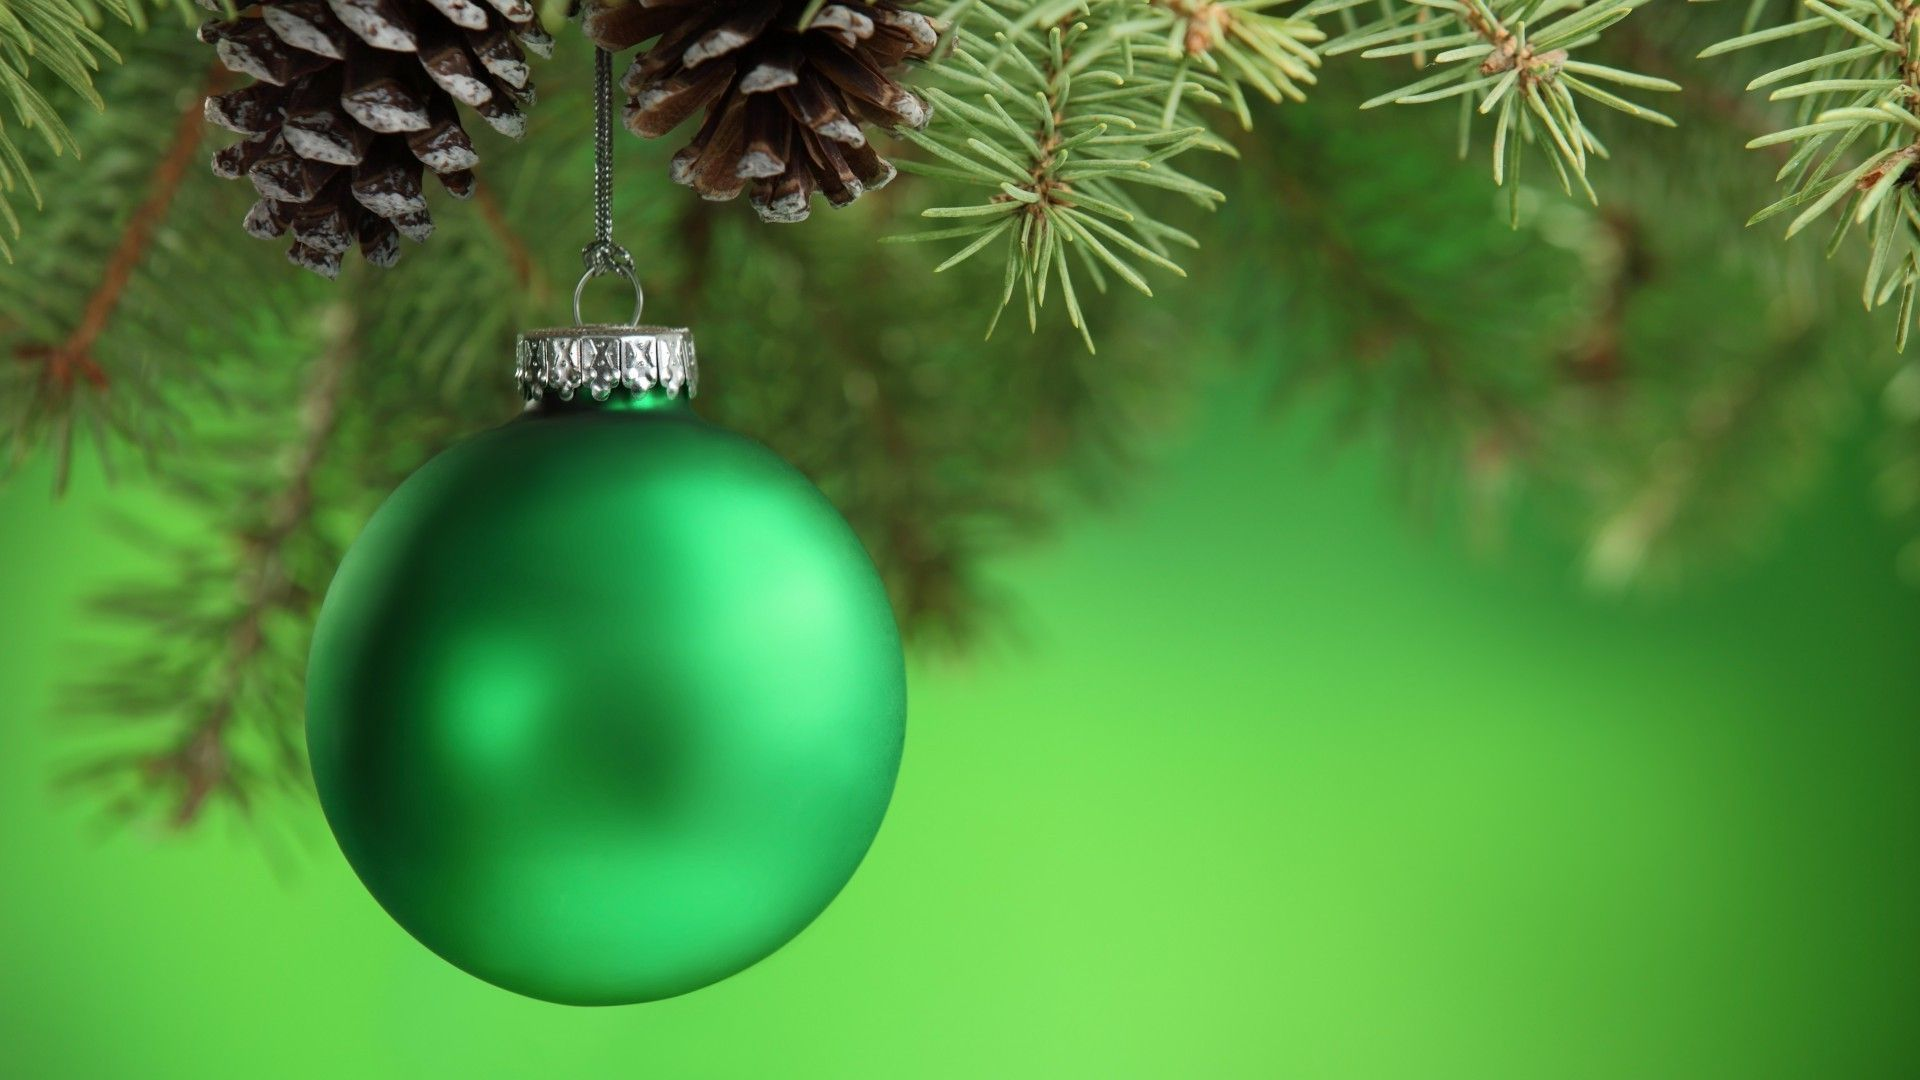 Green Christmas Good Wallpaper